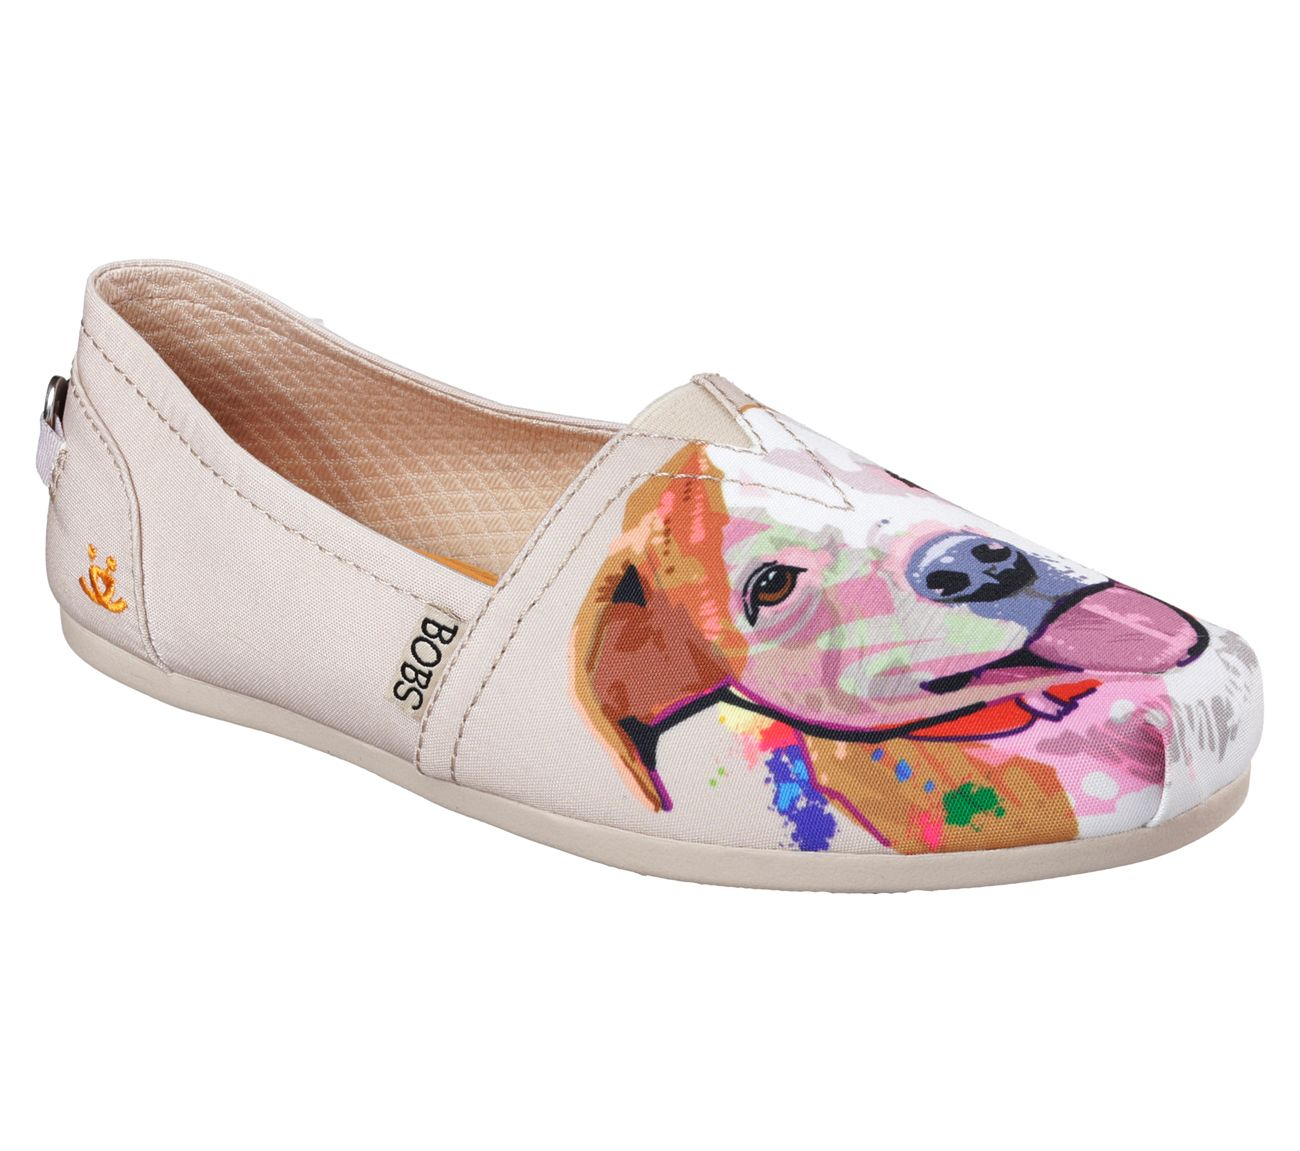 Womens Slip On Shoe With Dog Print